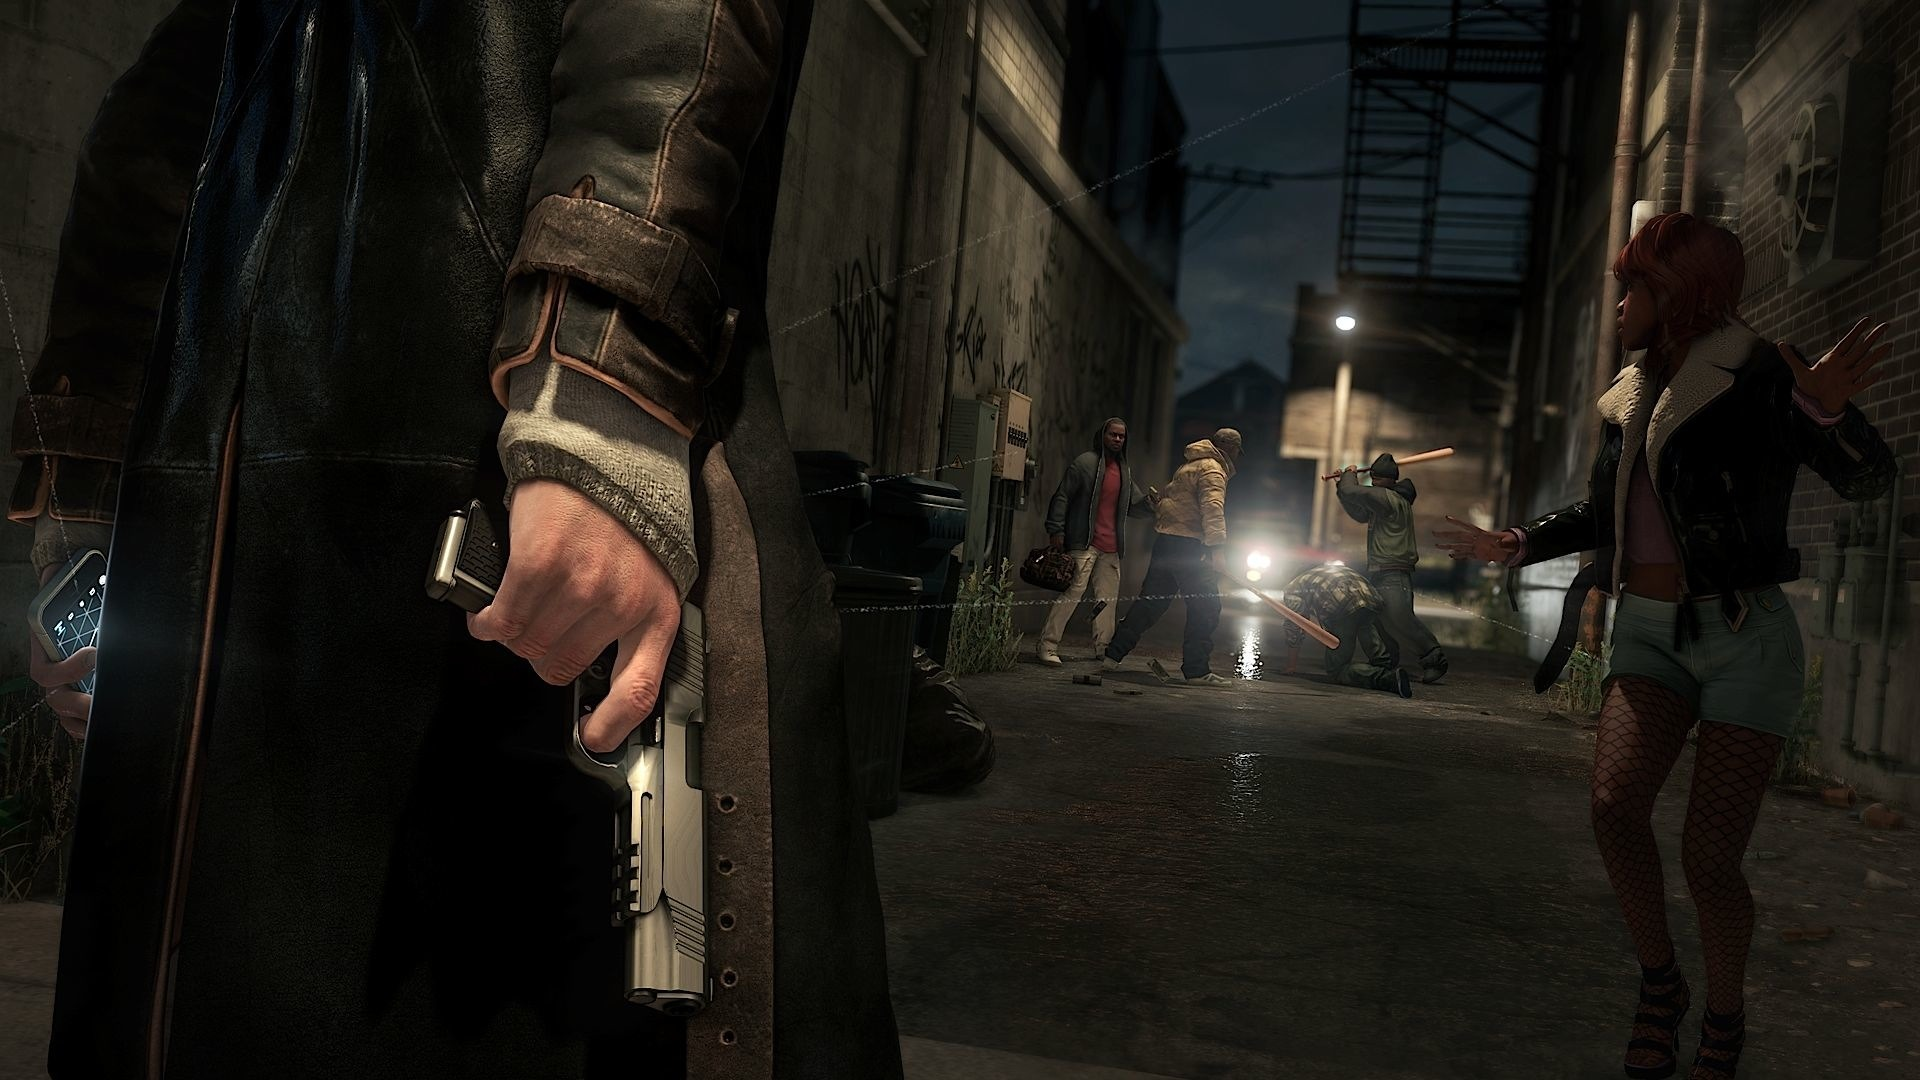 1394141747-watch-dogs-vigilante-alley.jpg